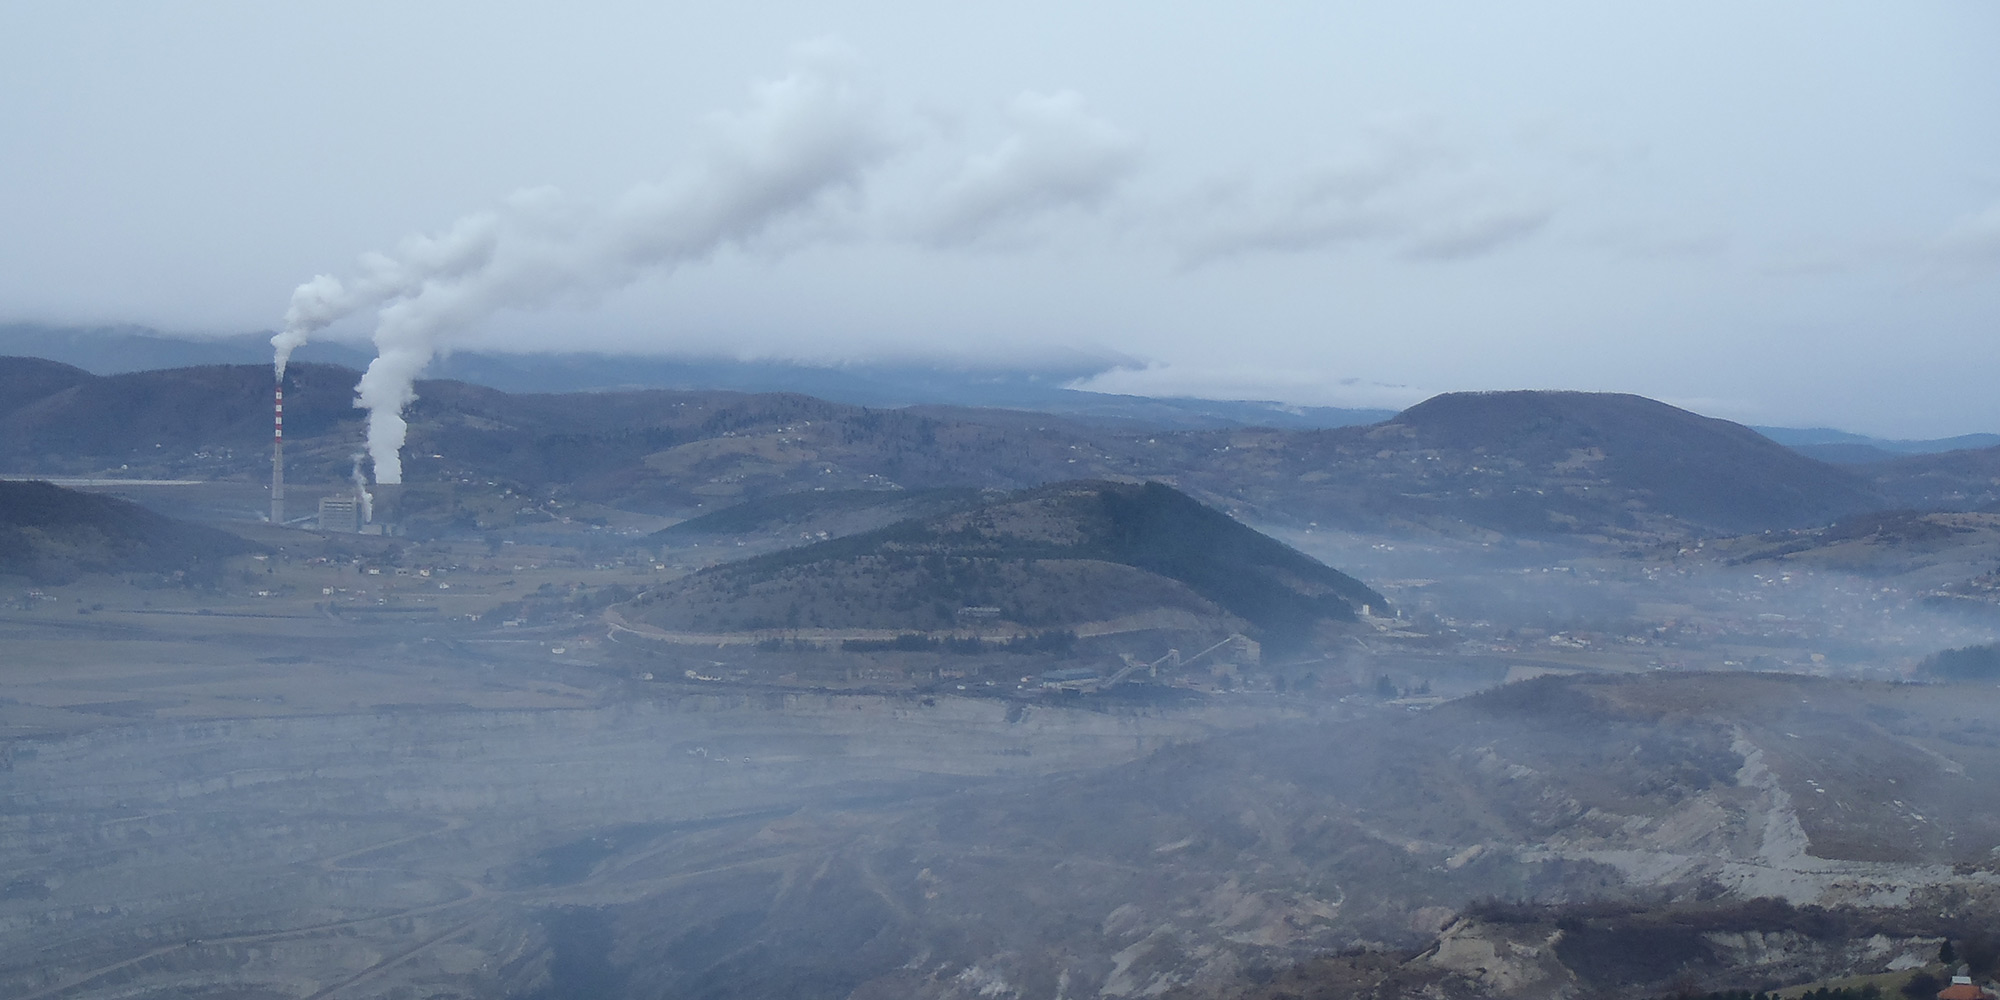 Panorama view of a valley that is dominated by a coal power plant. The smoke from the power plant's stacks fills the entire valley.